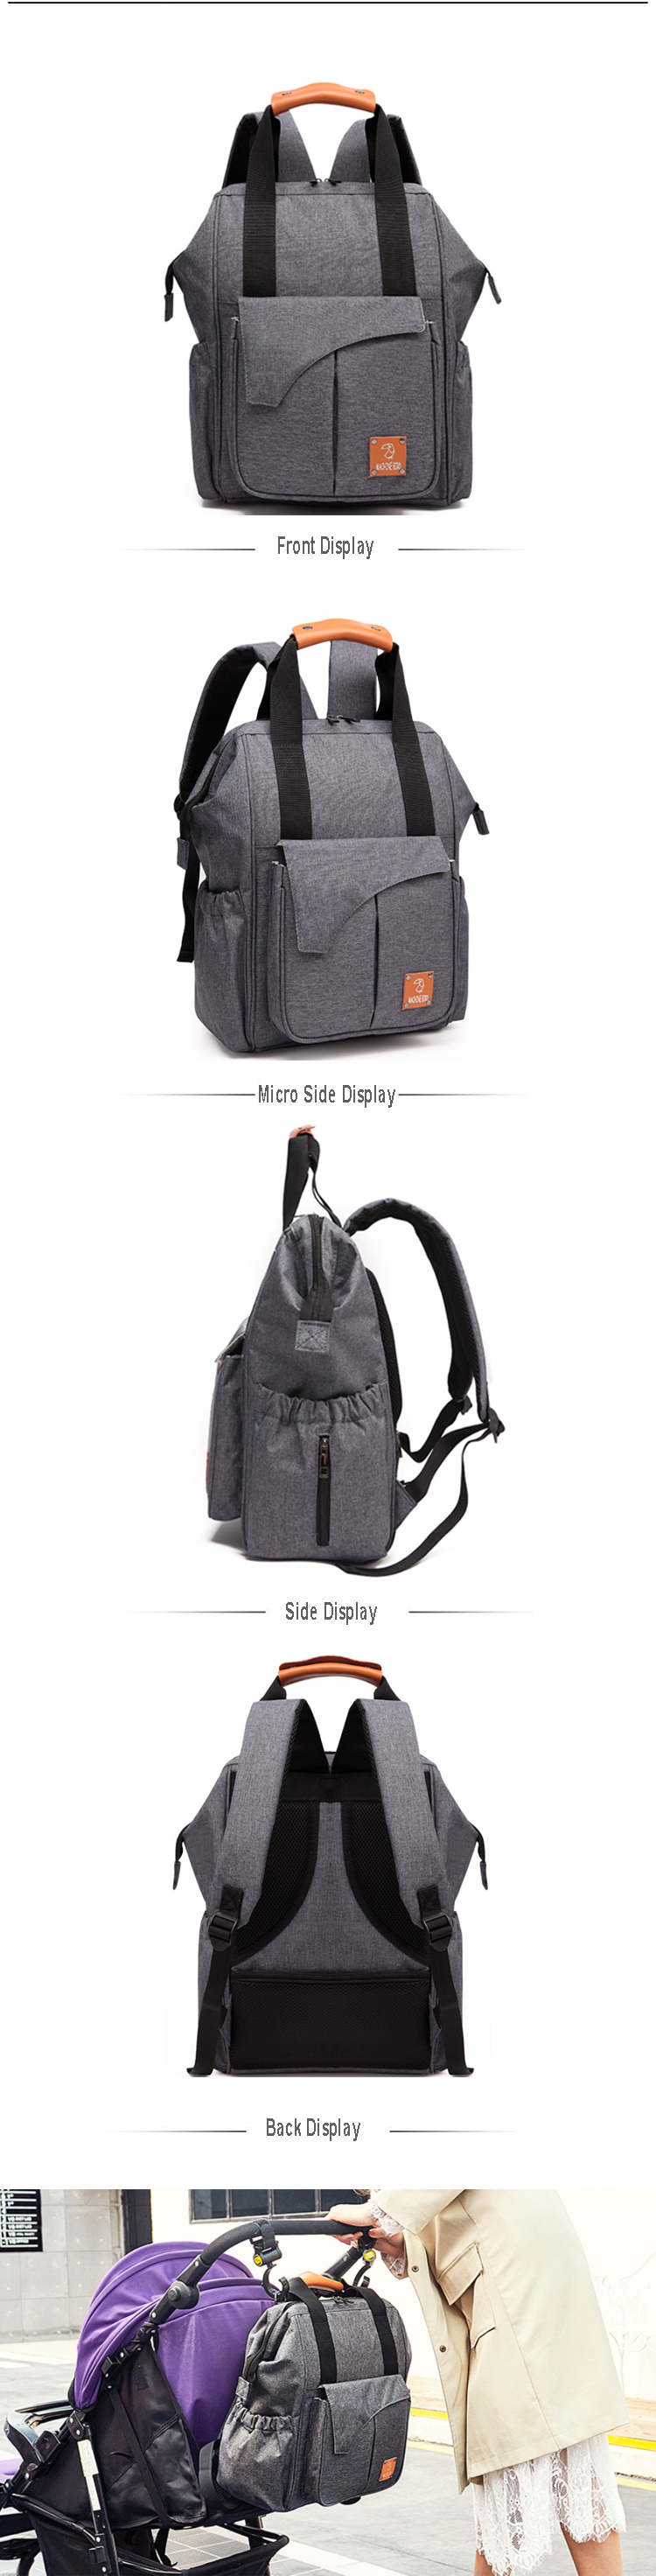 Osgoodway Waterproof Fashion Travel Baby Nappy Changing Bag Diaper Bag Backpack For Mom